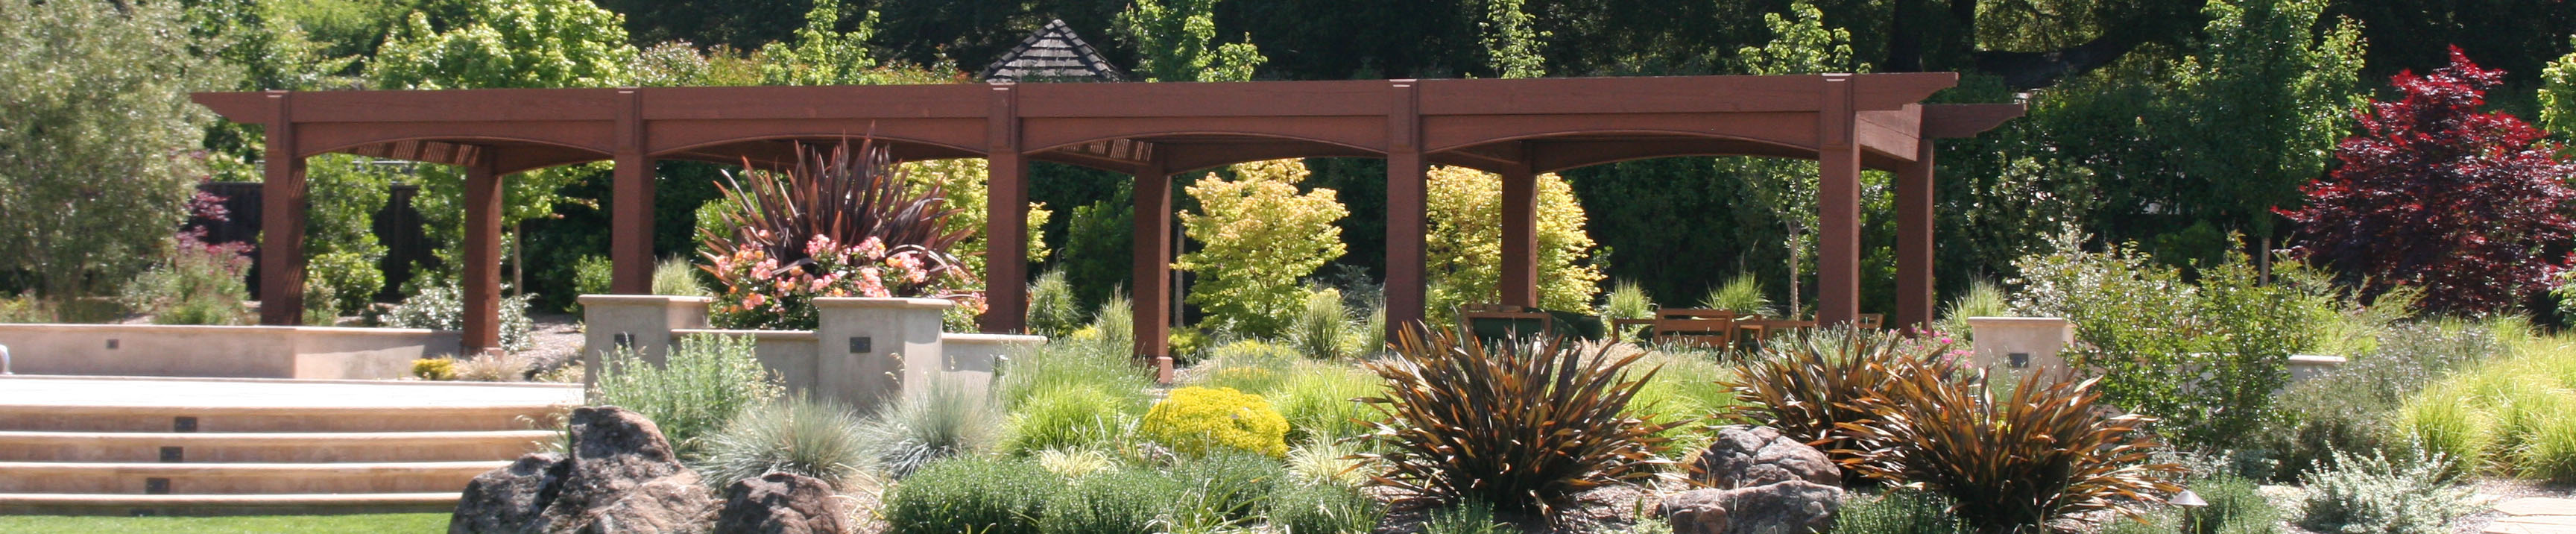 Jolee Horne Landscape Design | Profile | Garden Design For San Francisco  Peninsula Area